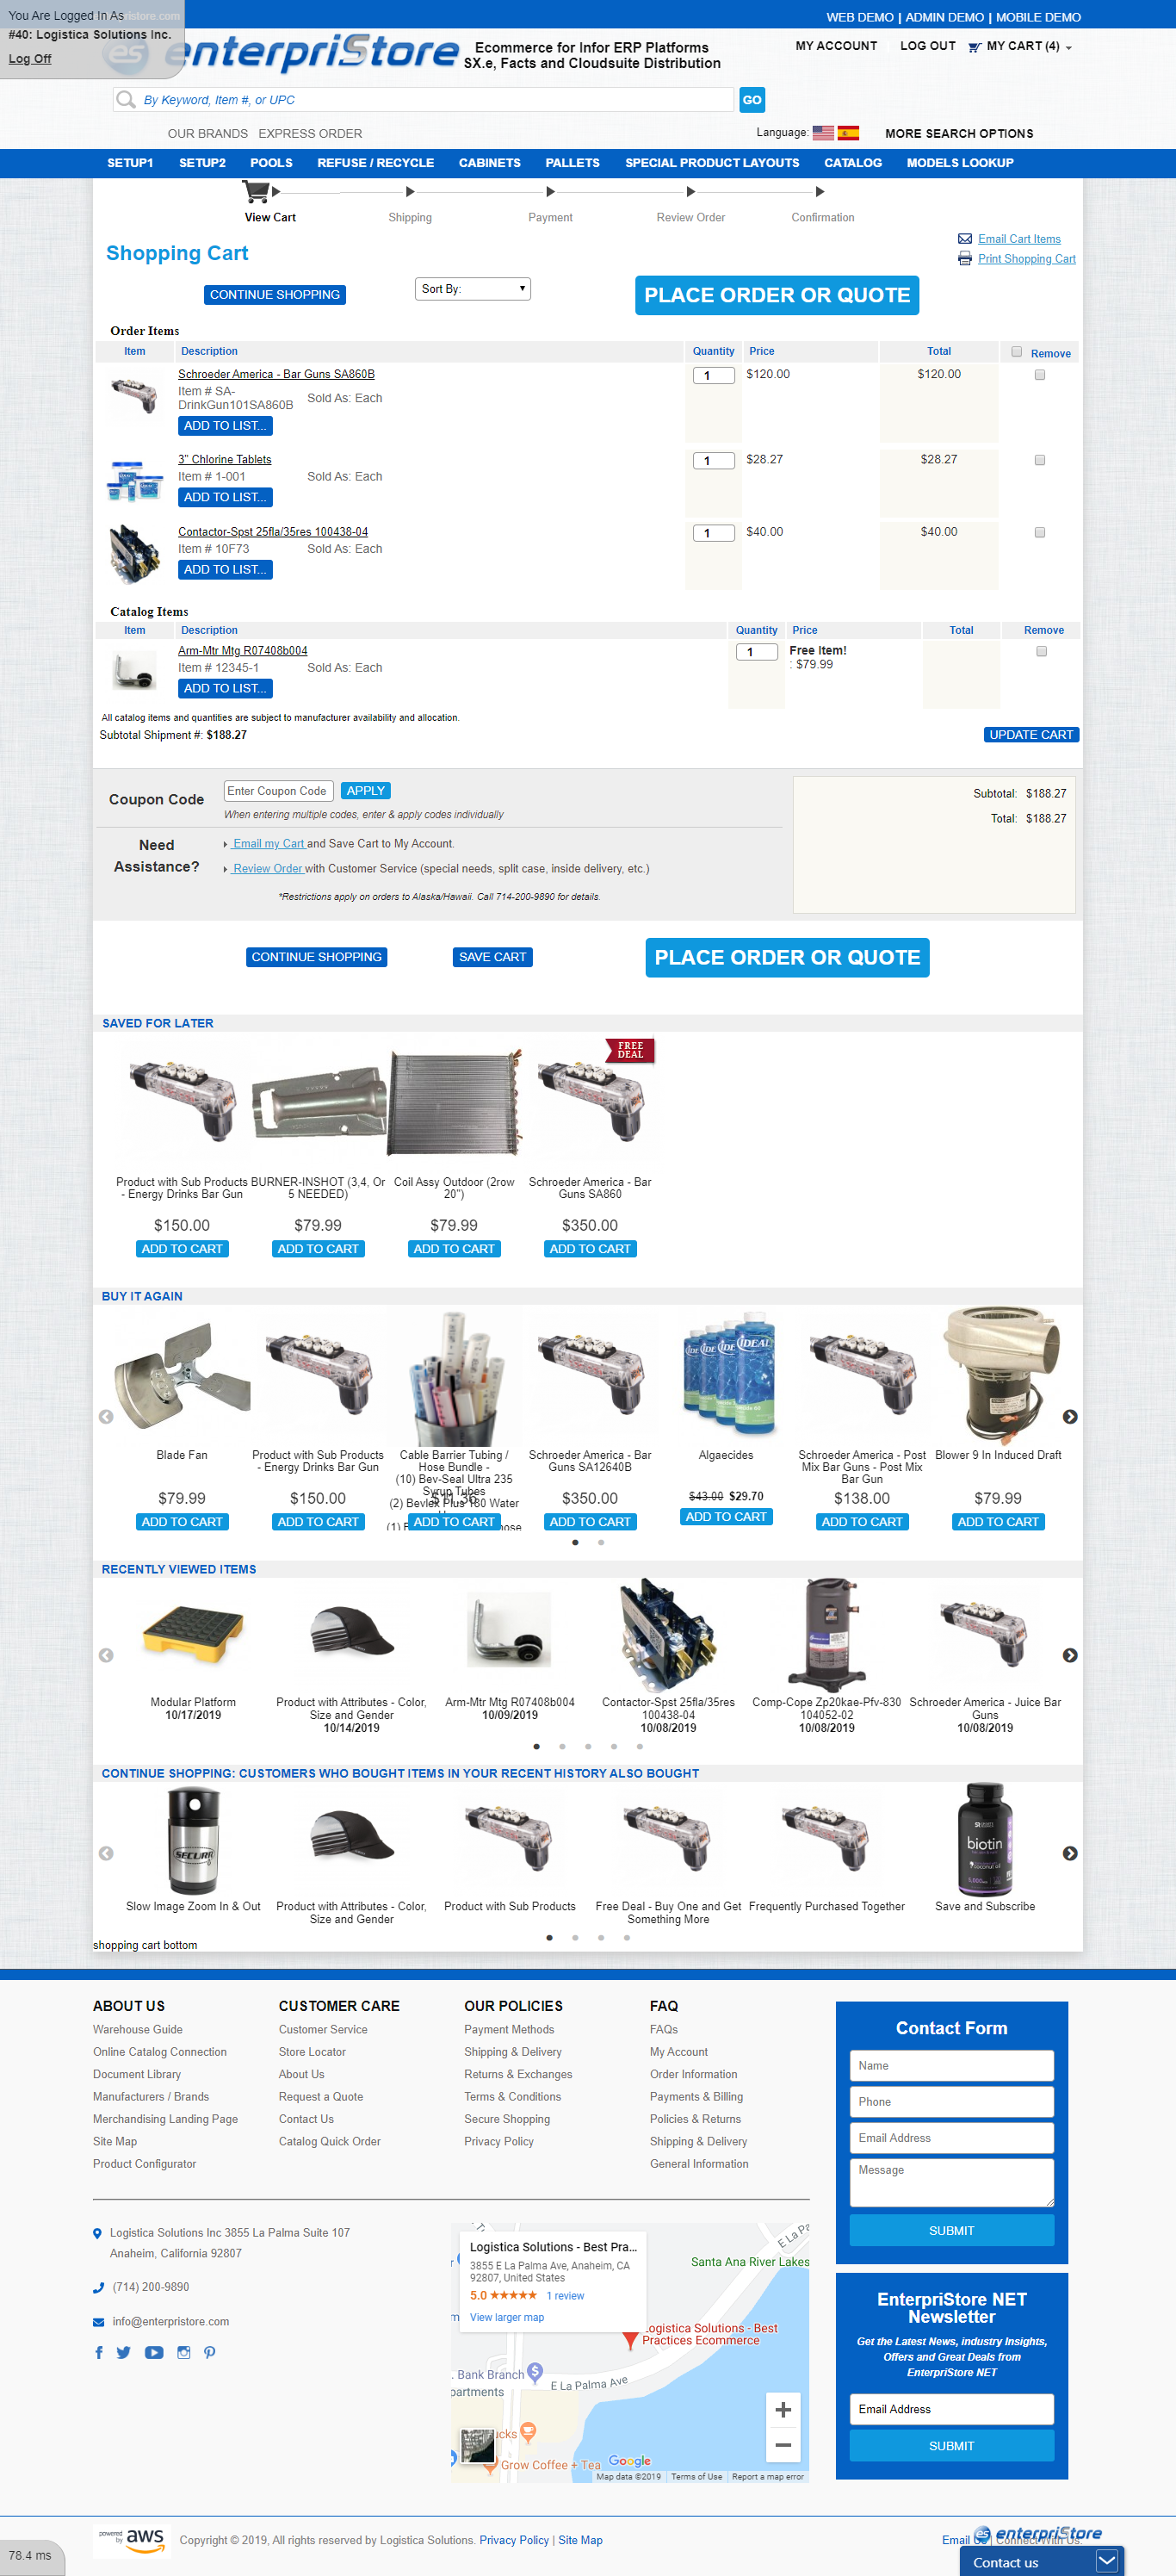 Shopping Cart Layout Major Sections